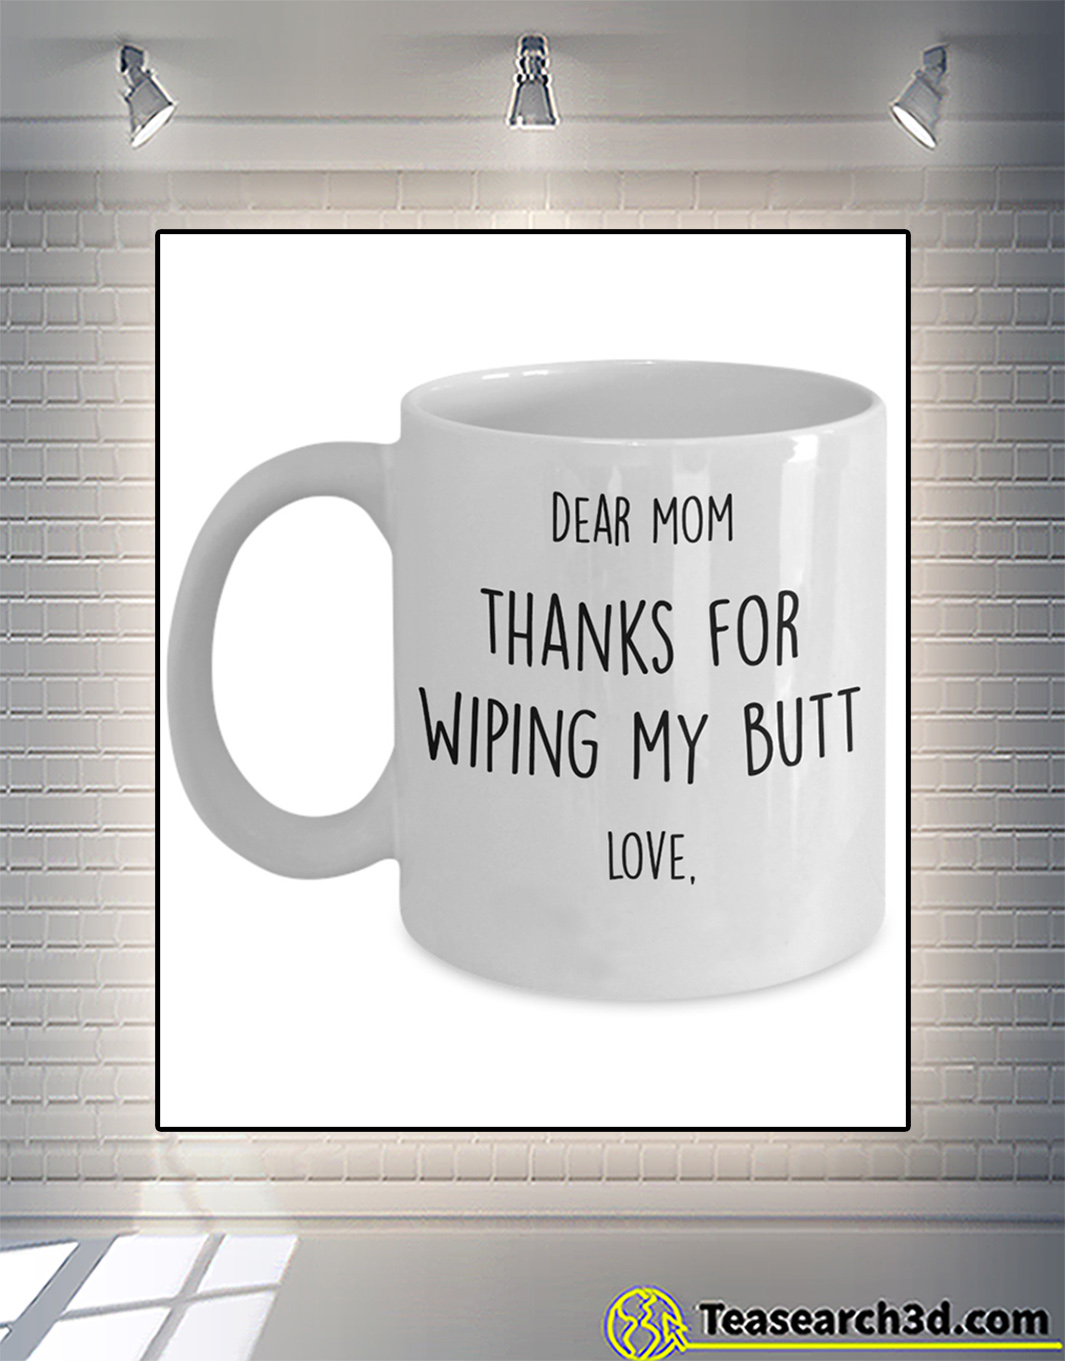 Personalized custom name thanks for wiping my butt mug 11oz